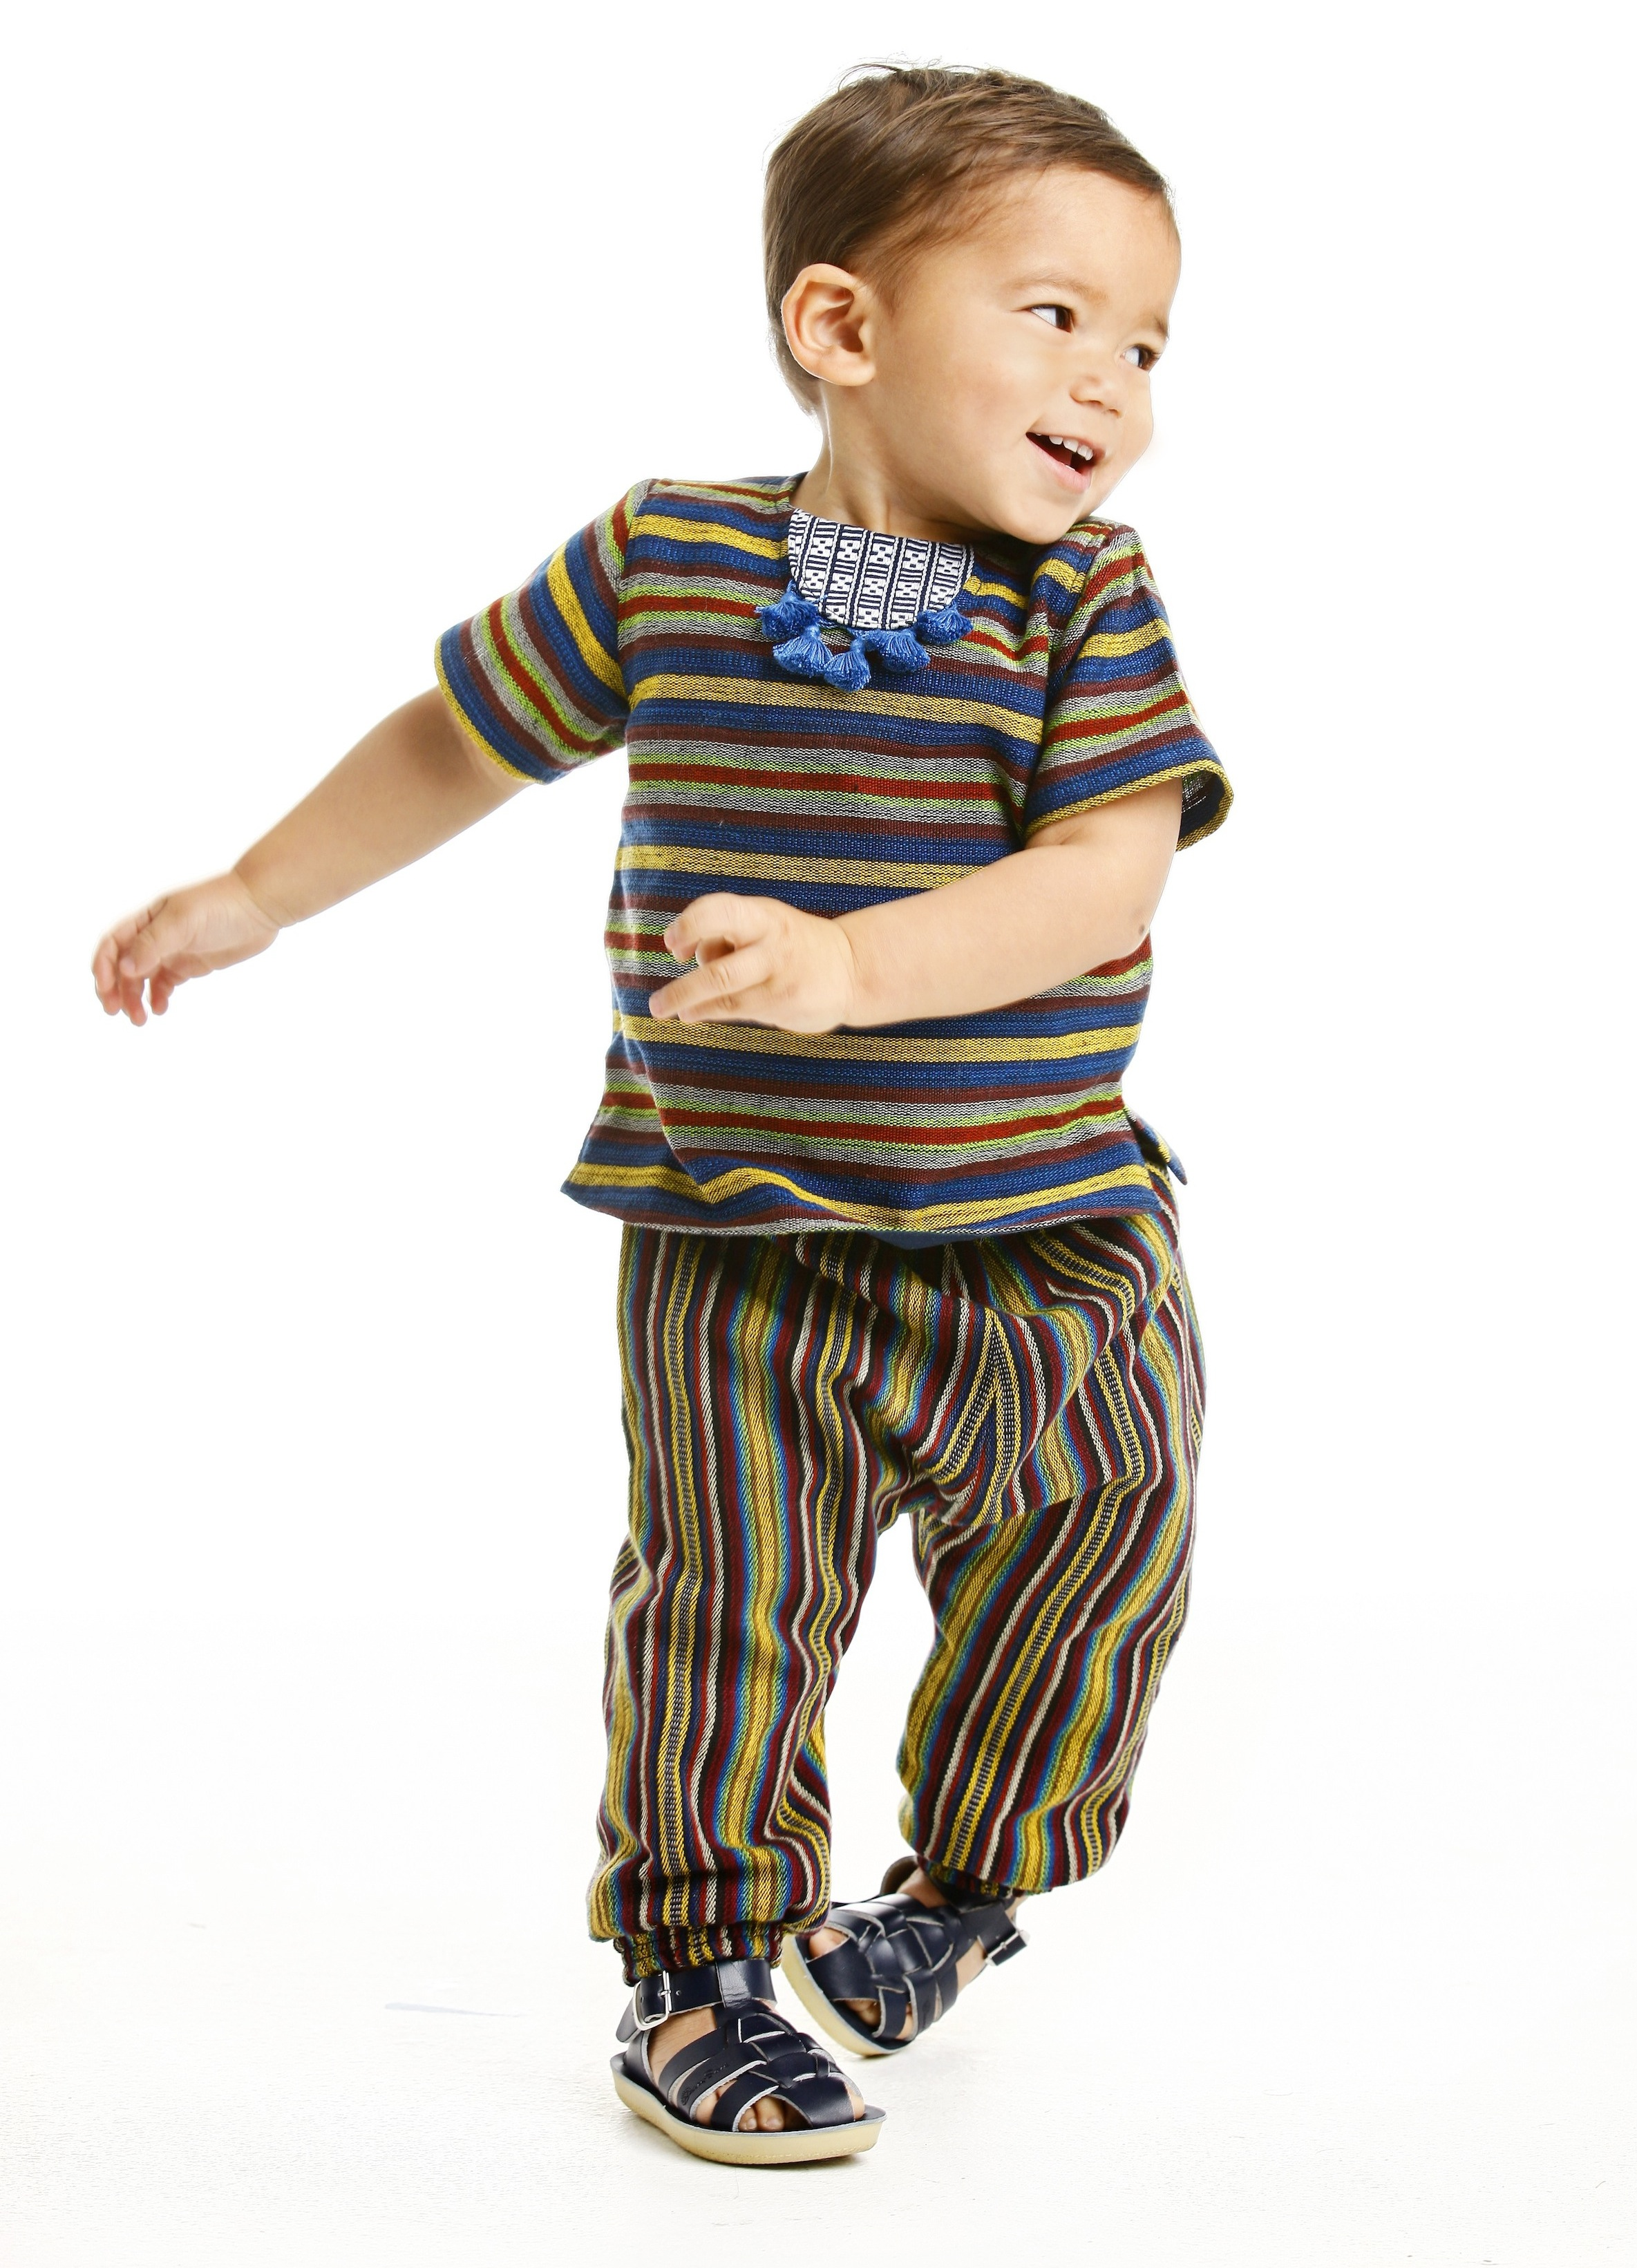 Hudson in the fringe tunic and slouch pants